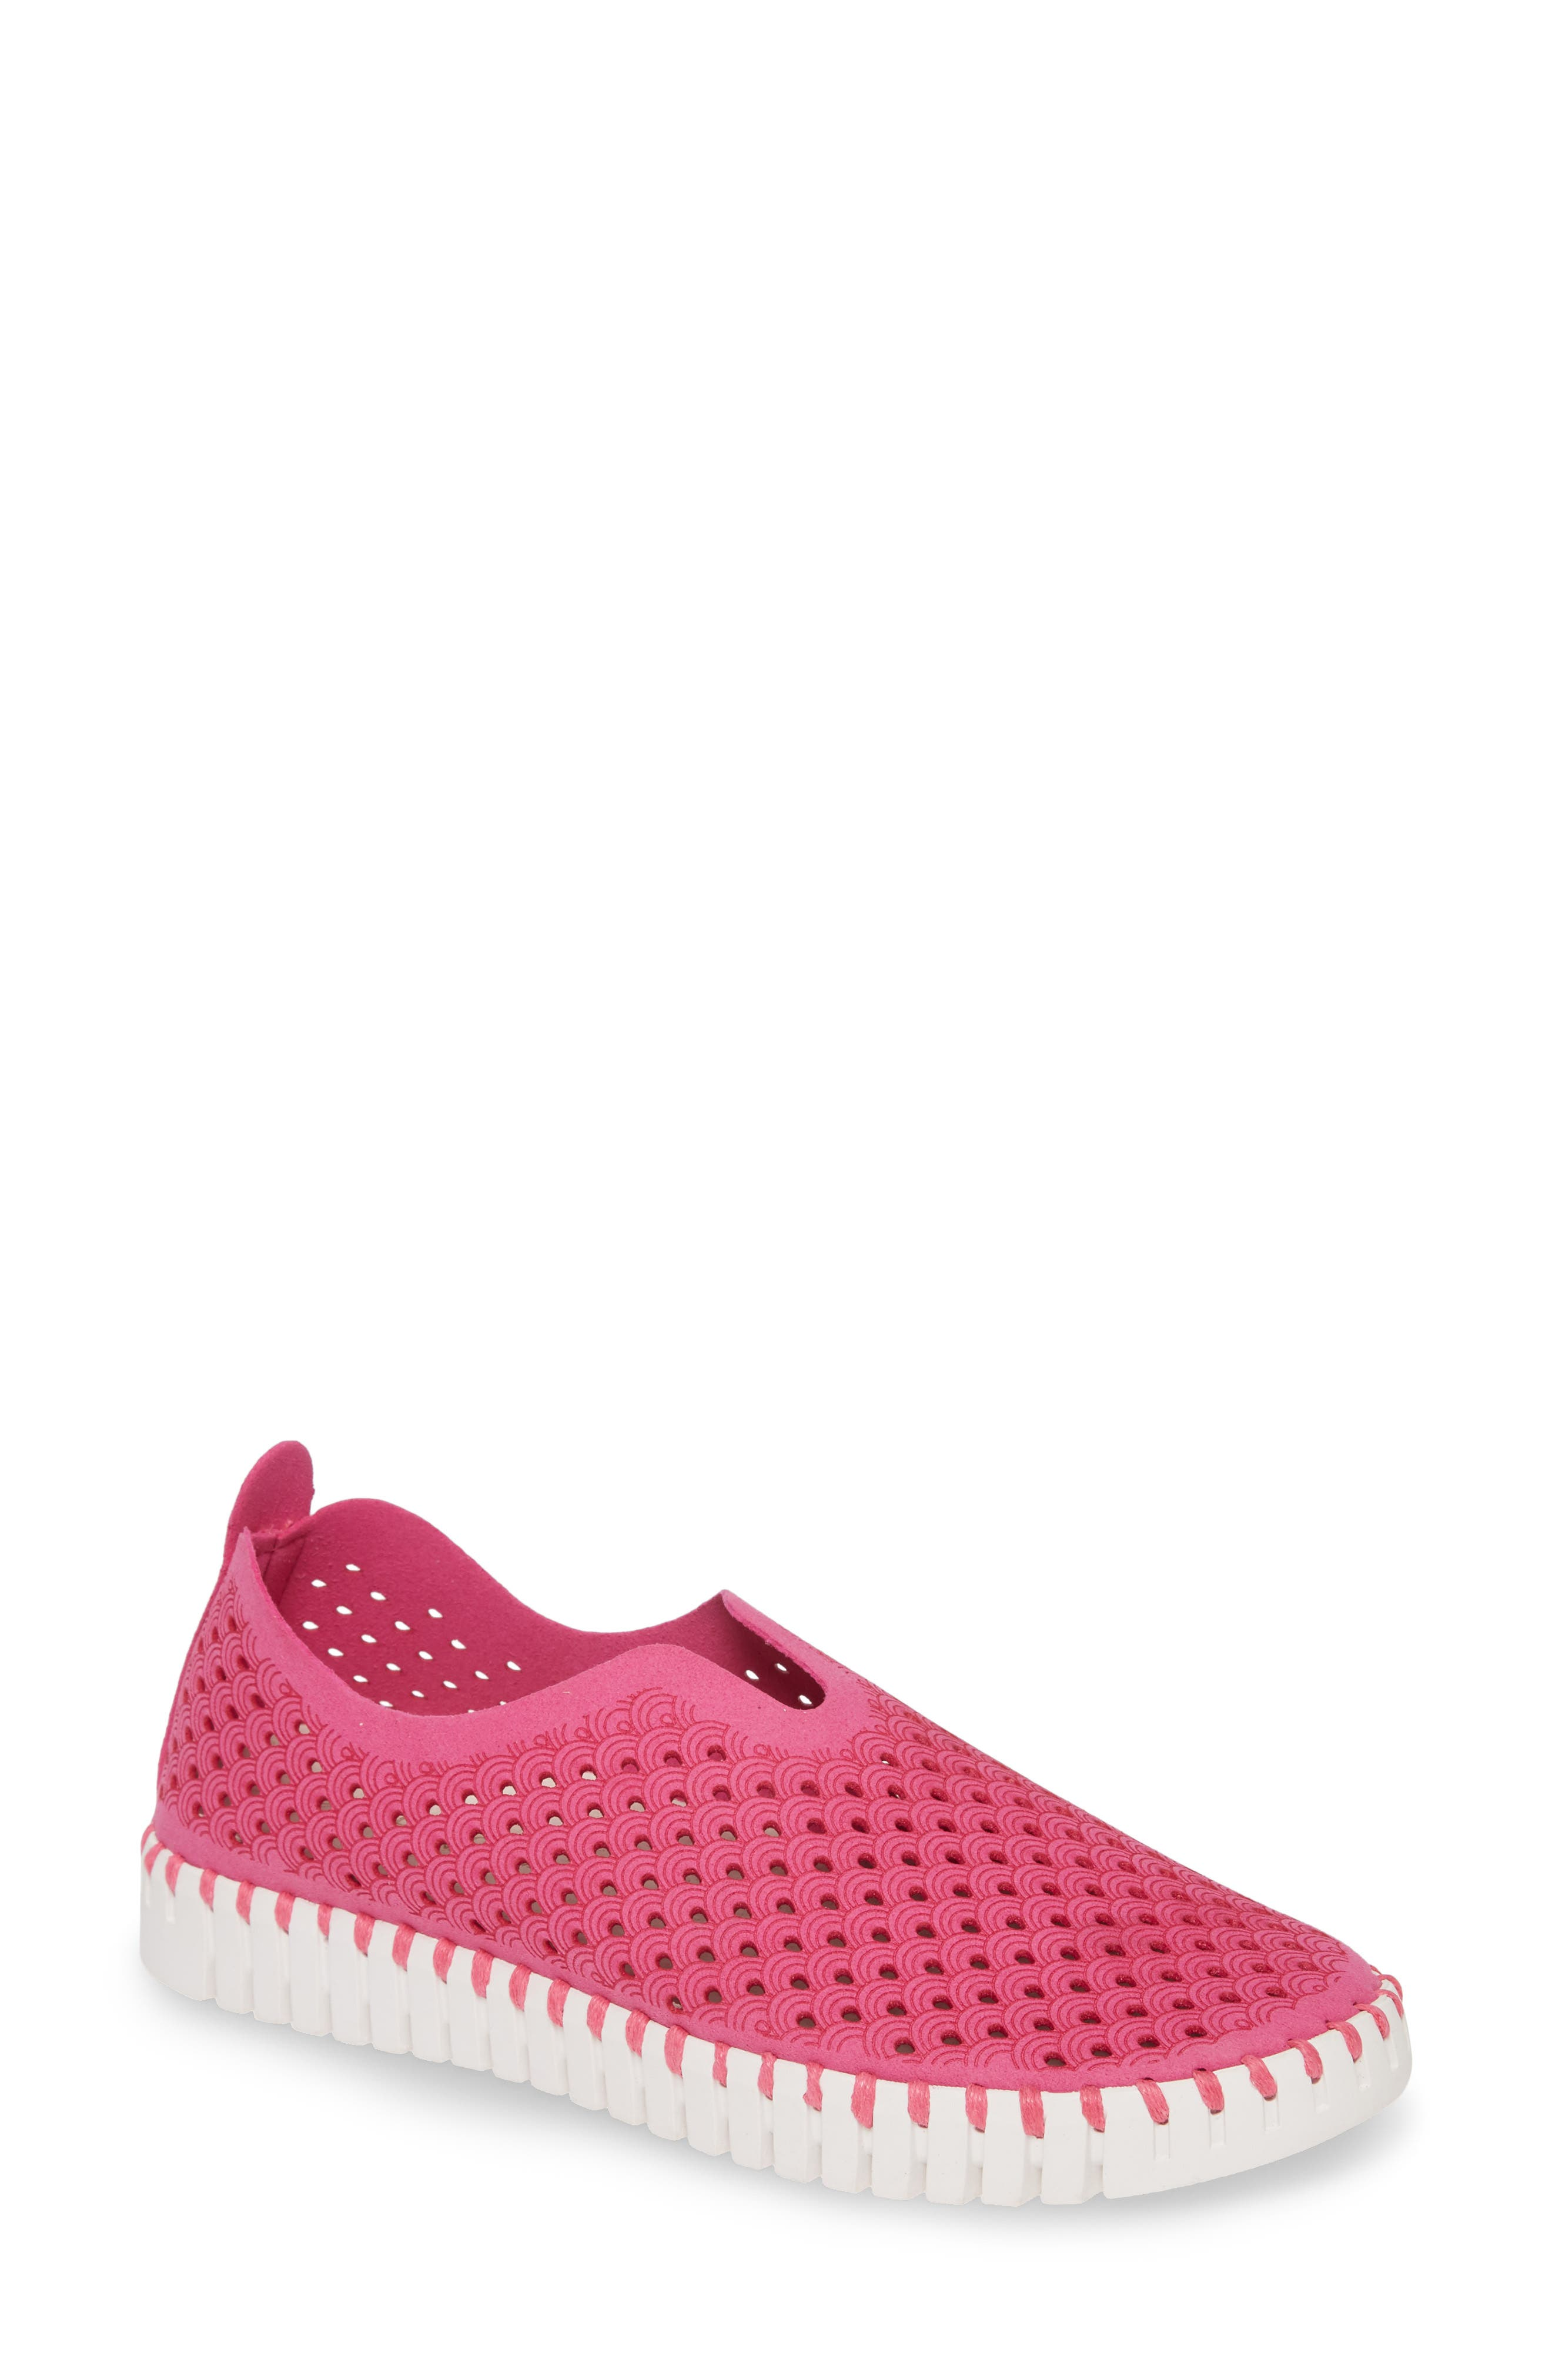 Ilse Jacobsen Tulip 139 Perforated Slip-On Sneaker (Women)